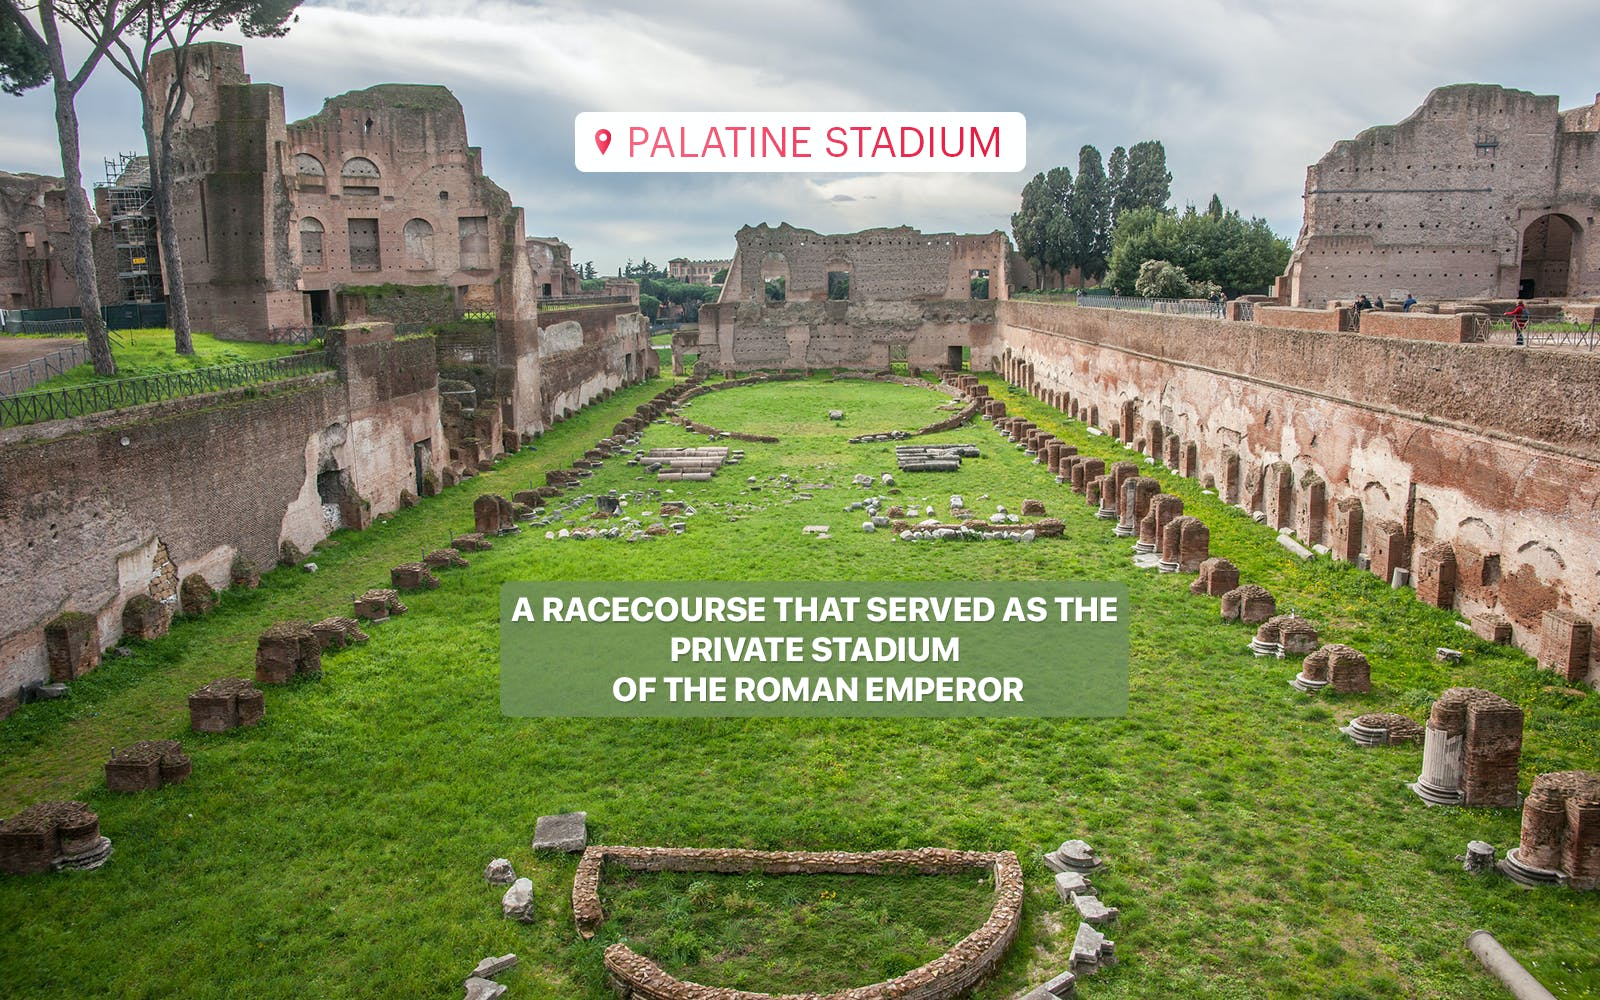 guided tour with skip the line access to colosseum, roman forum & palatine-6